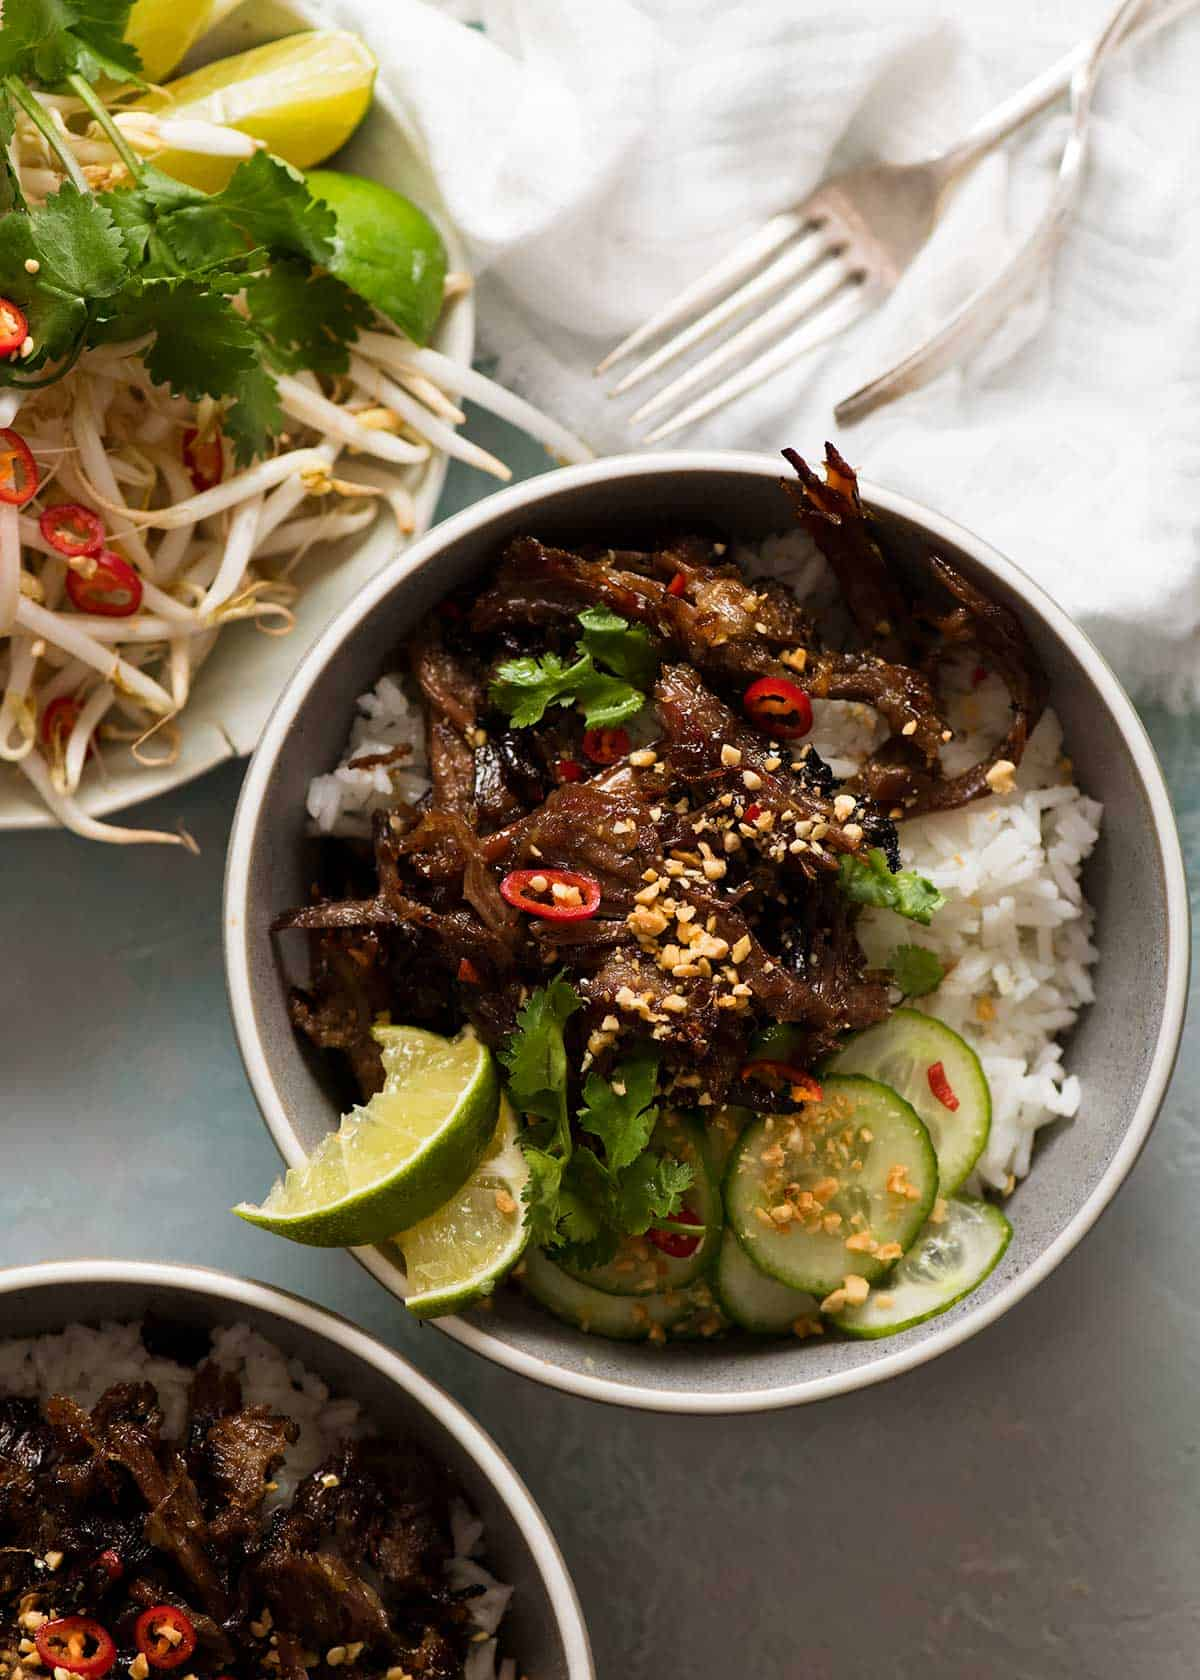 2 bowls of Caramelised Vietnamese Shredded Beef over rice with a side of bean sprouts and fresh herbs